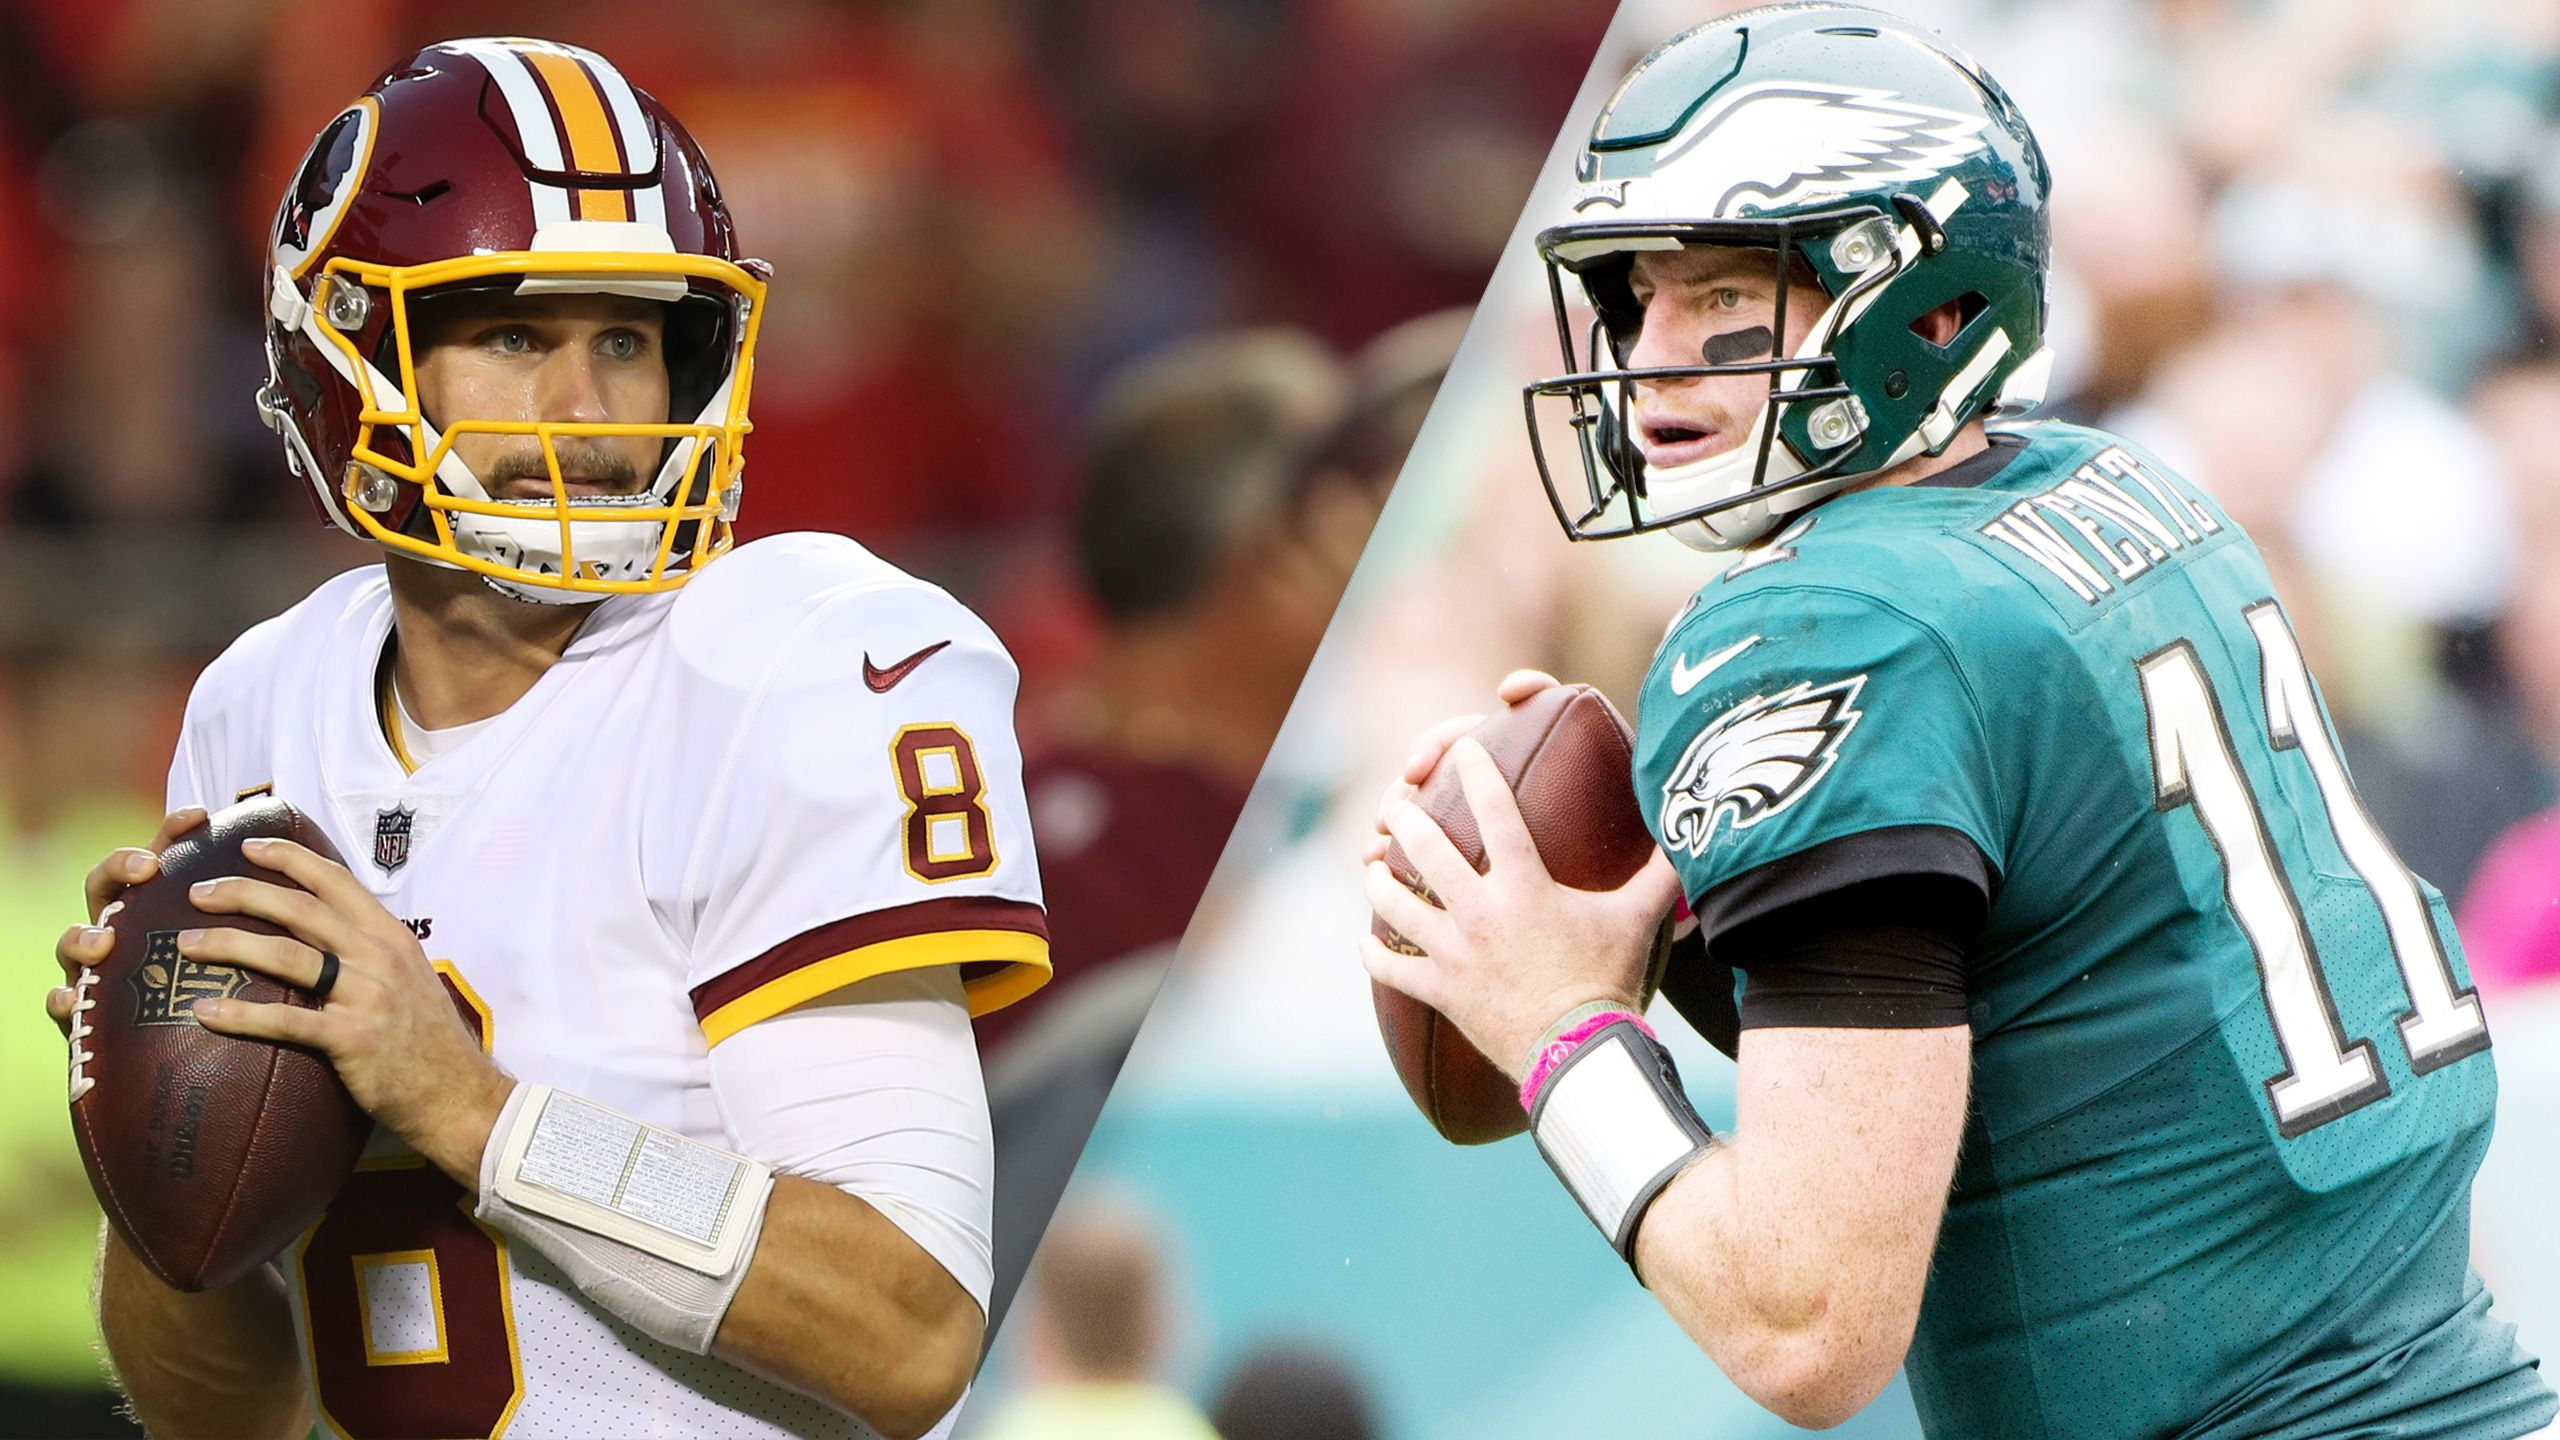 In Spanish - Washington Redskins vs. Philadelphia Eagles